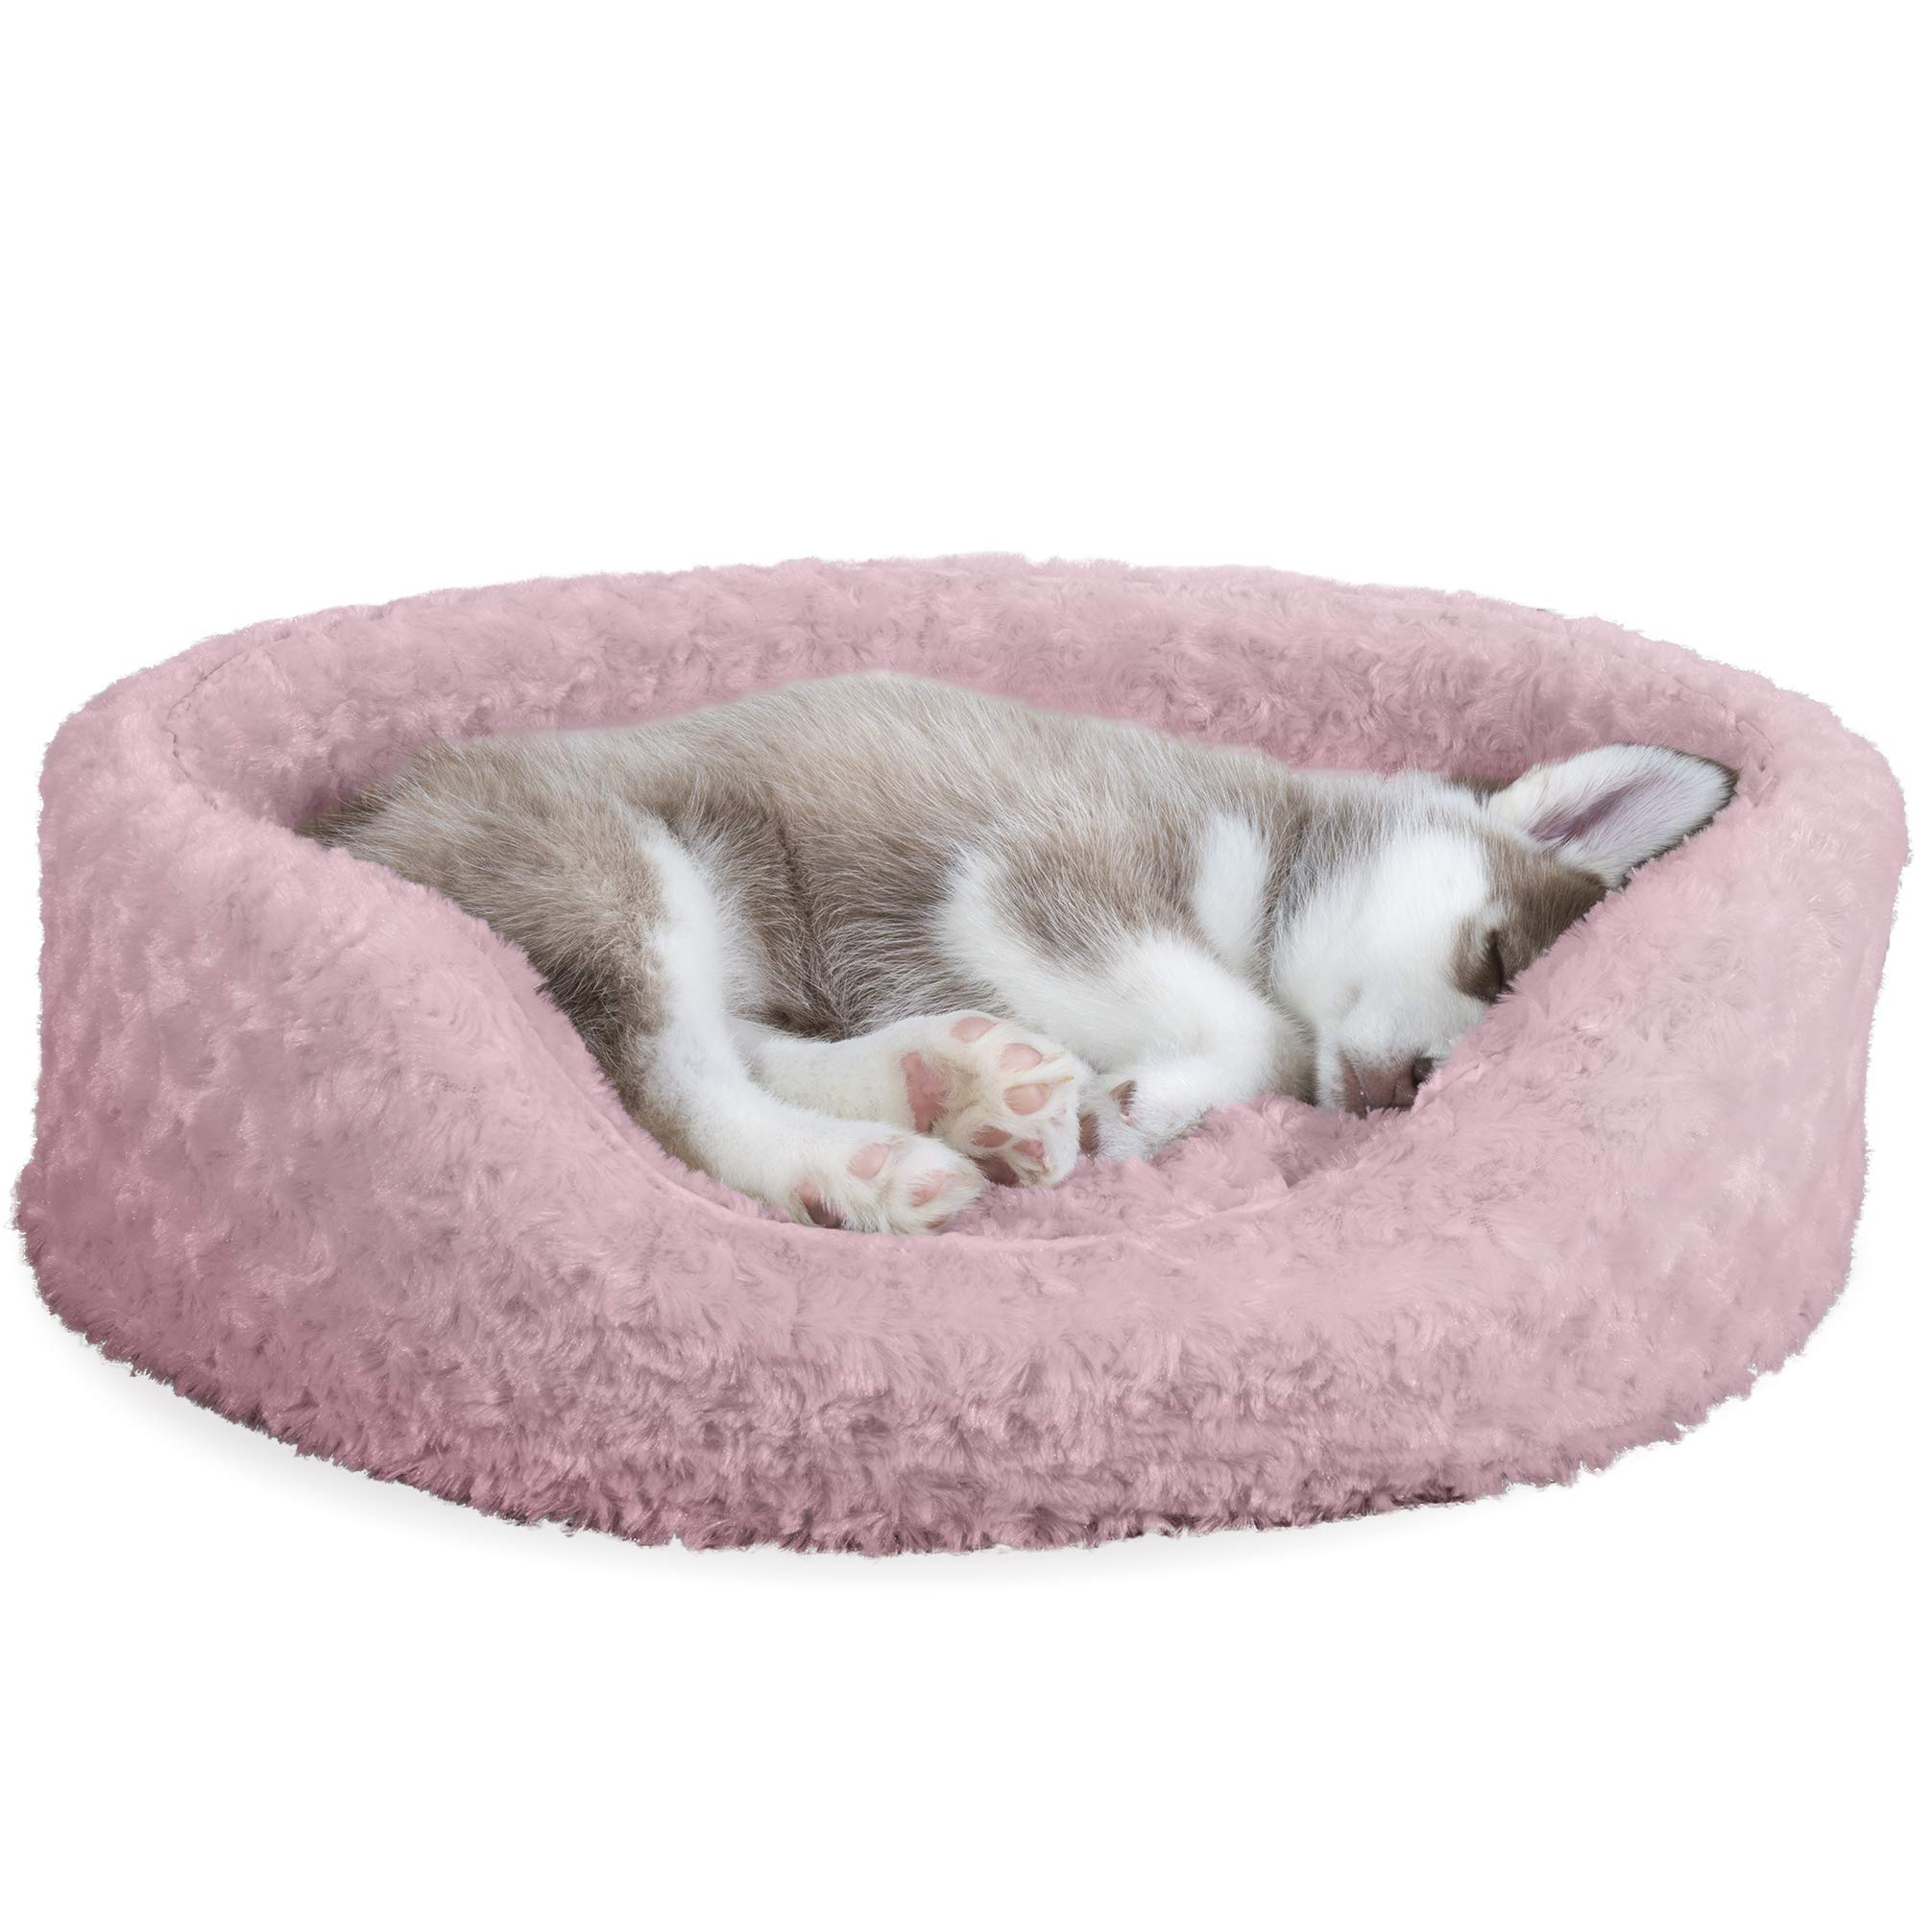 Furhaven Pet Dog Bed   Round Oval Cuddler Ultra Plush Faux Fur Nest Lounger Pet Bed for Dogs & Cats, Pink, Medium